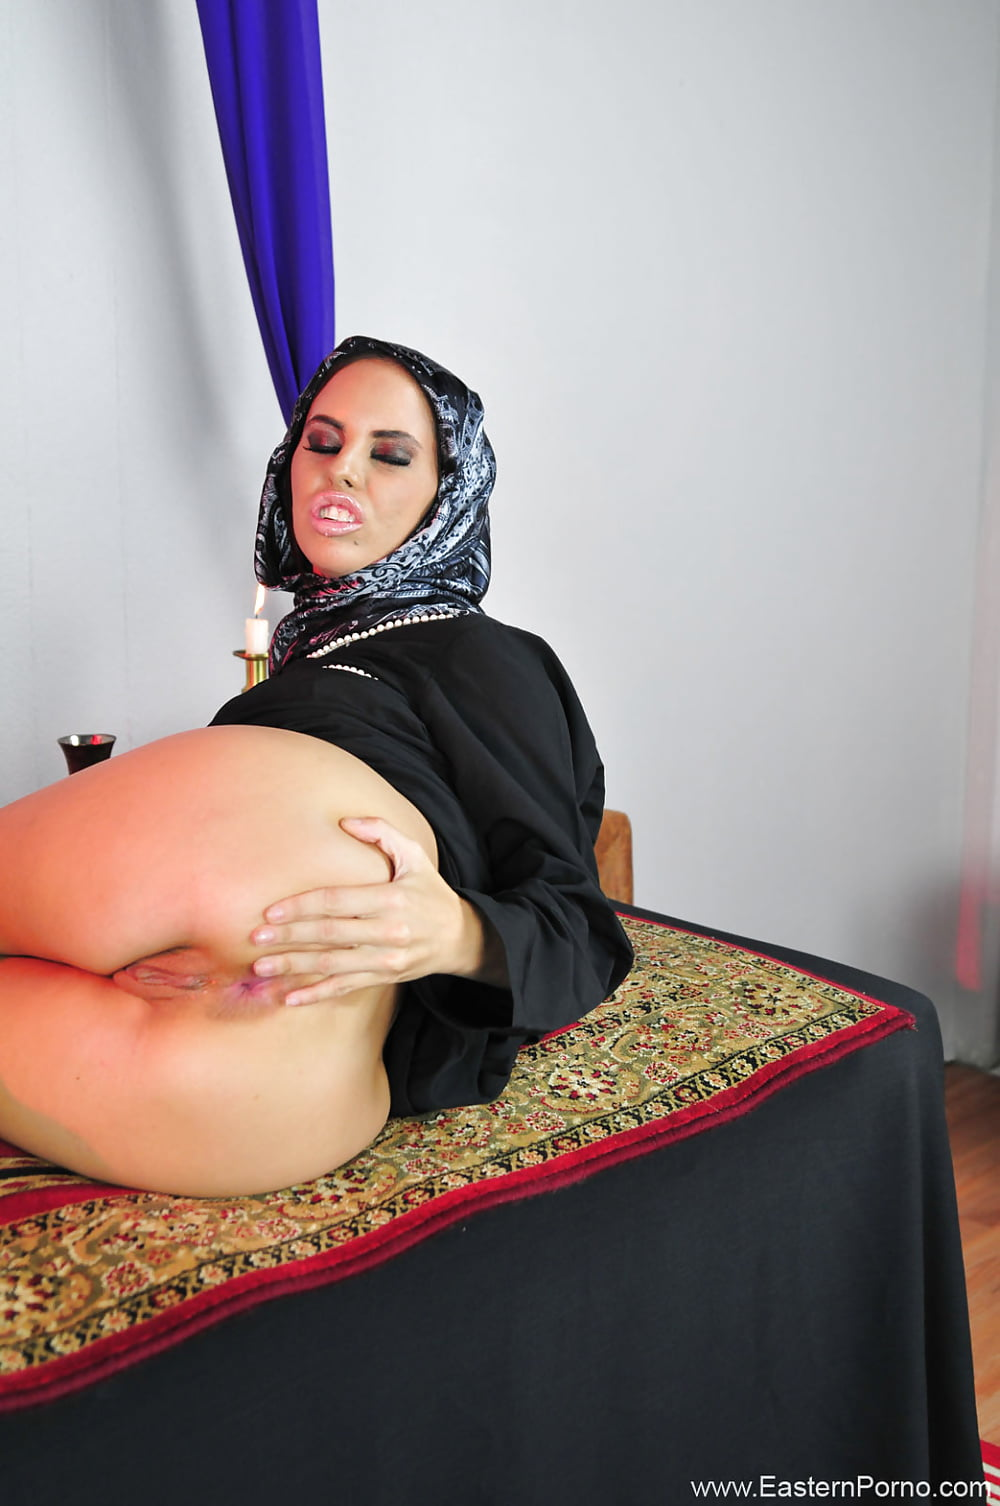 Muslim sex nude pics gallery — pic 15